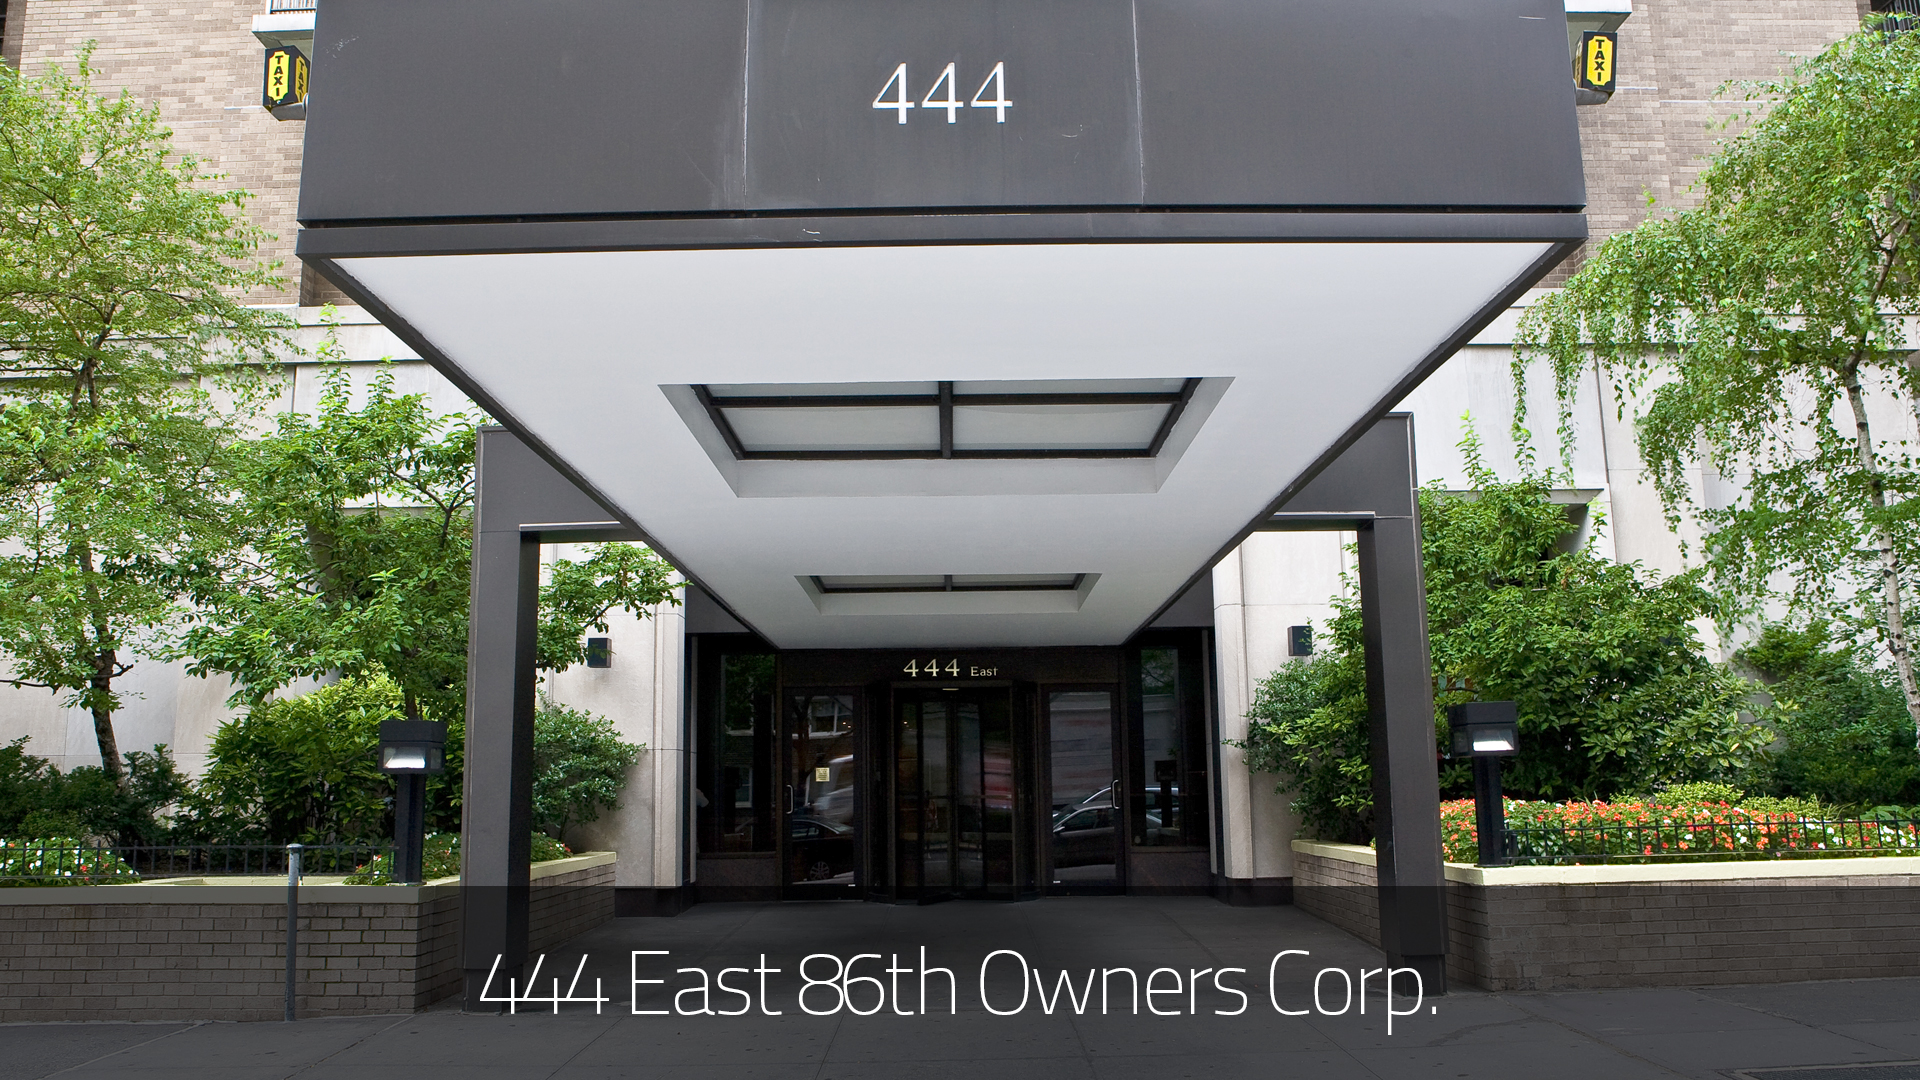 444 east 86th owners corp